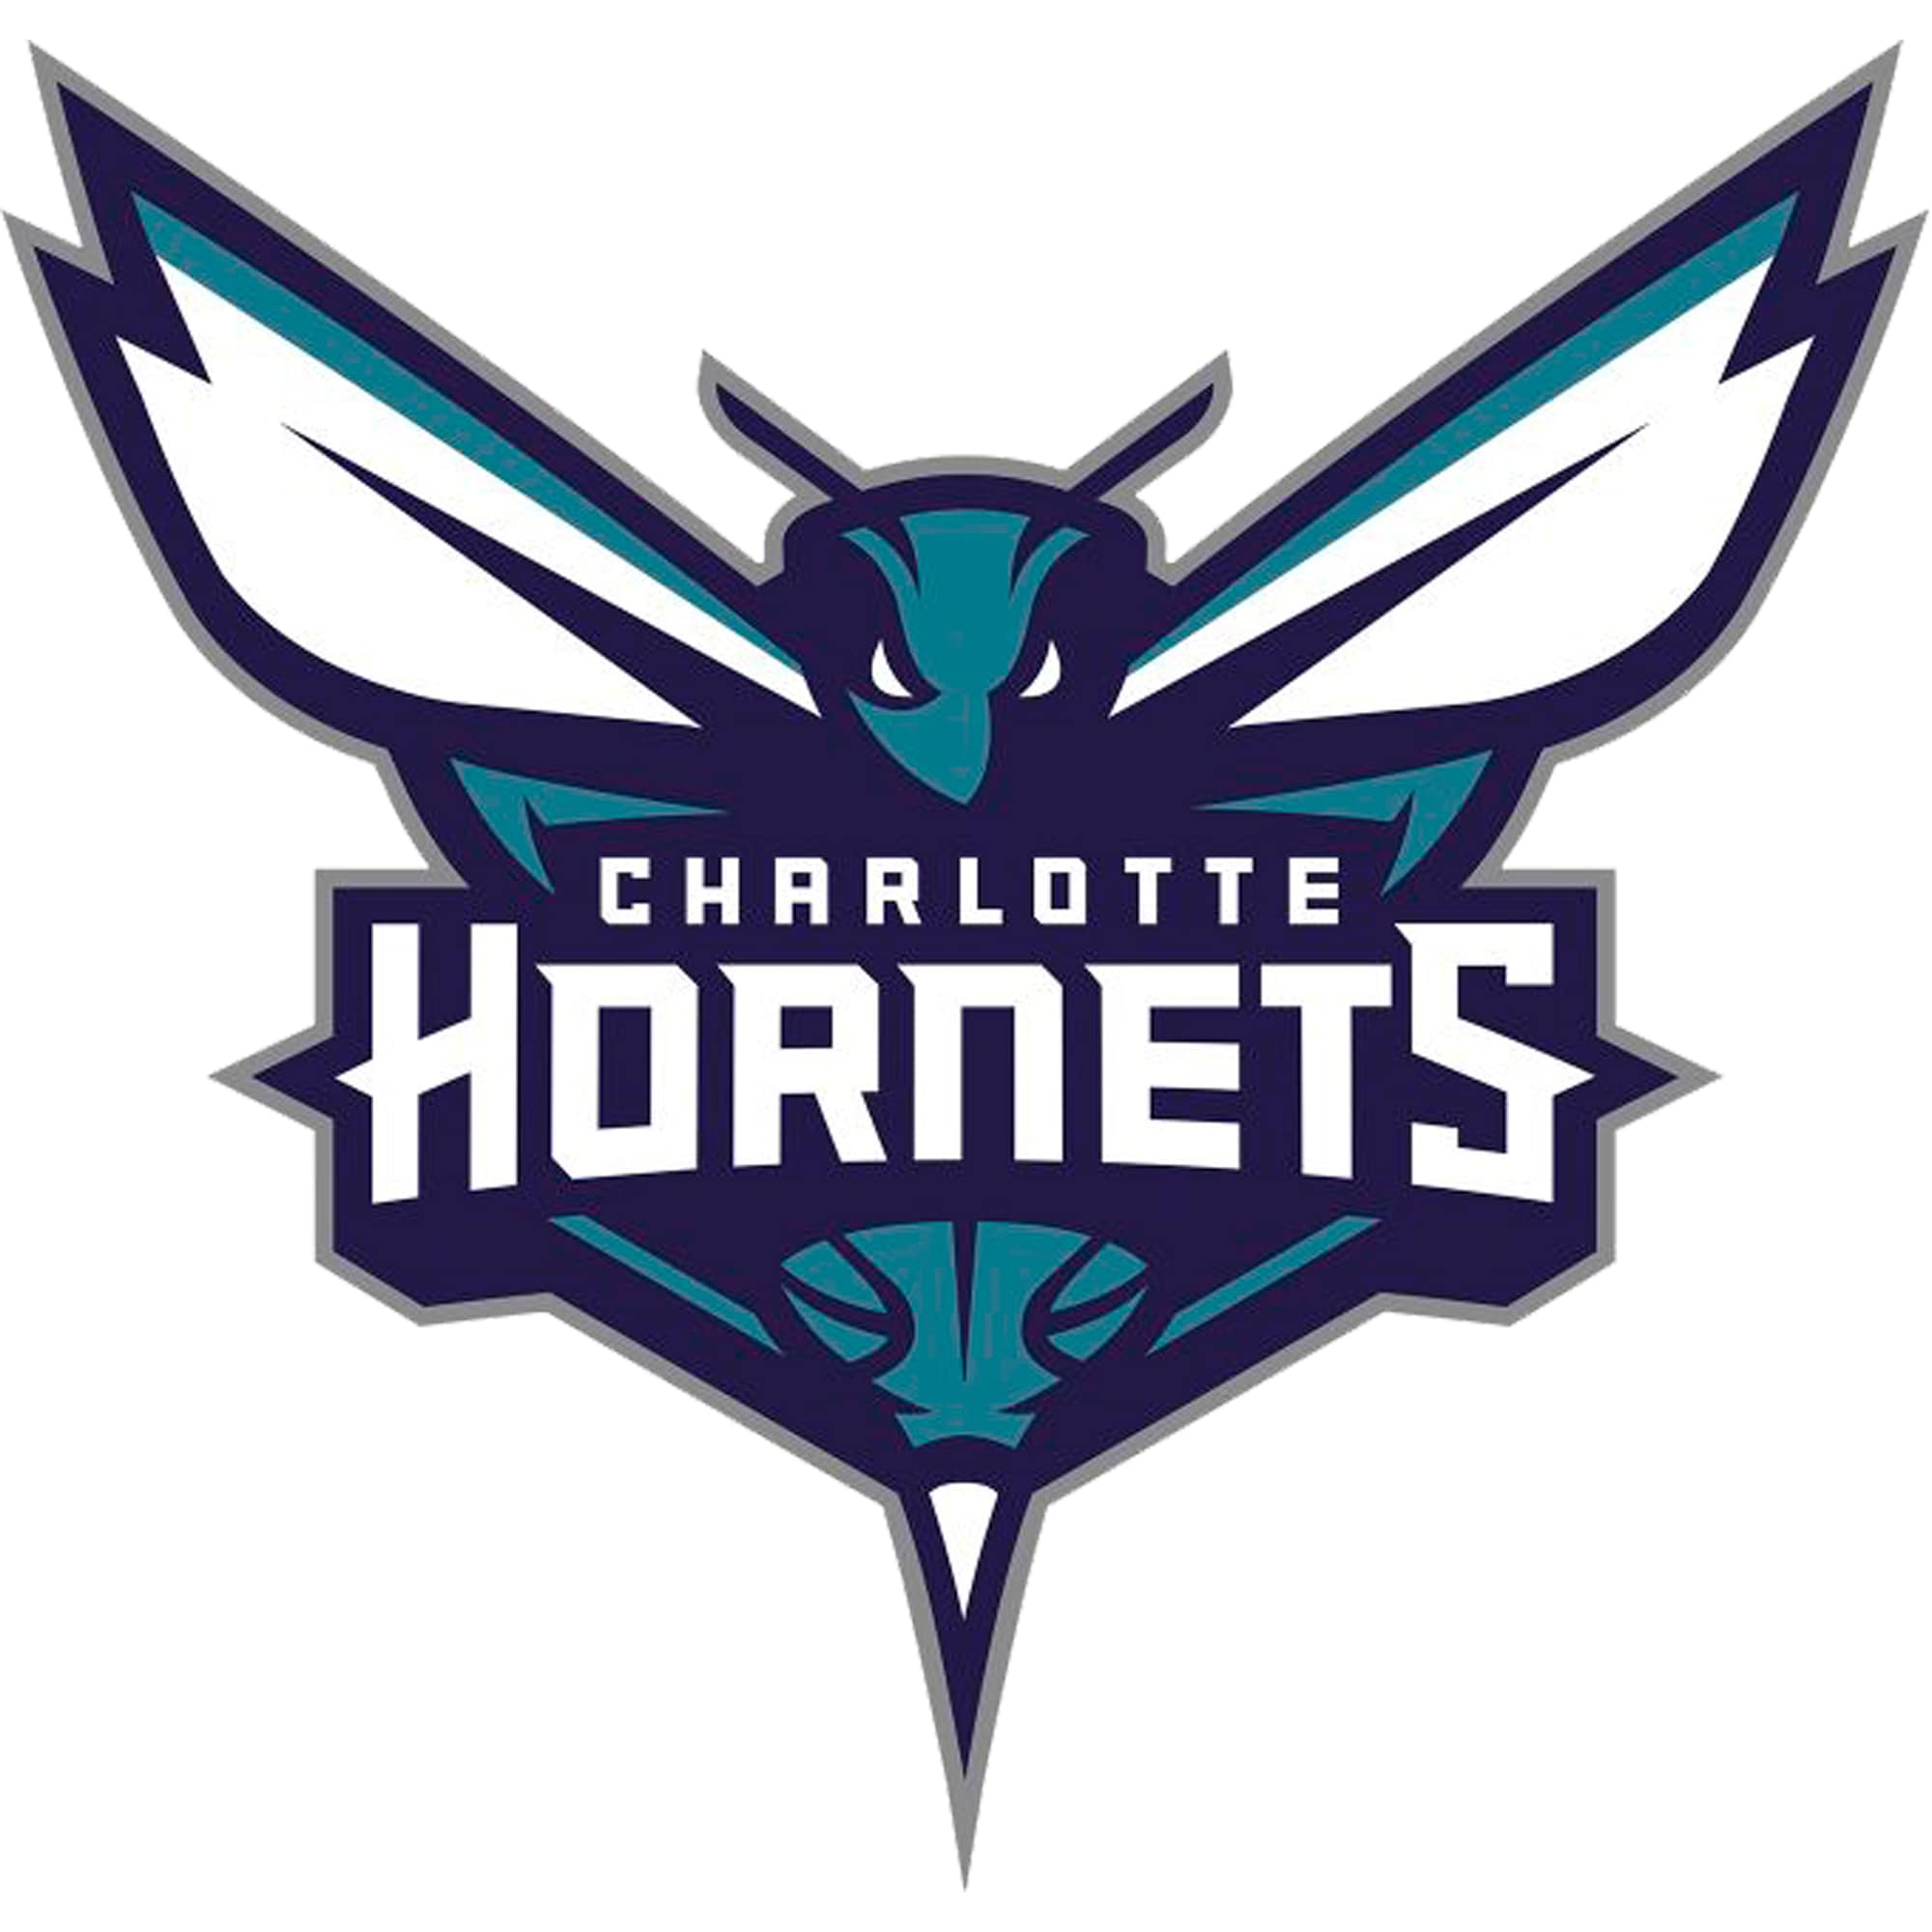 Charlotte Hornets Fathead Logo Giant Removable Decal